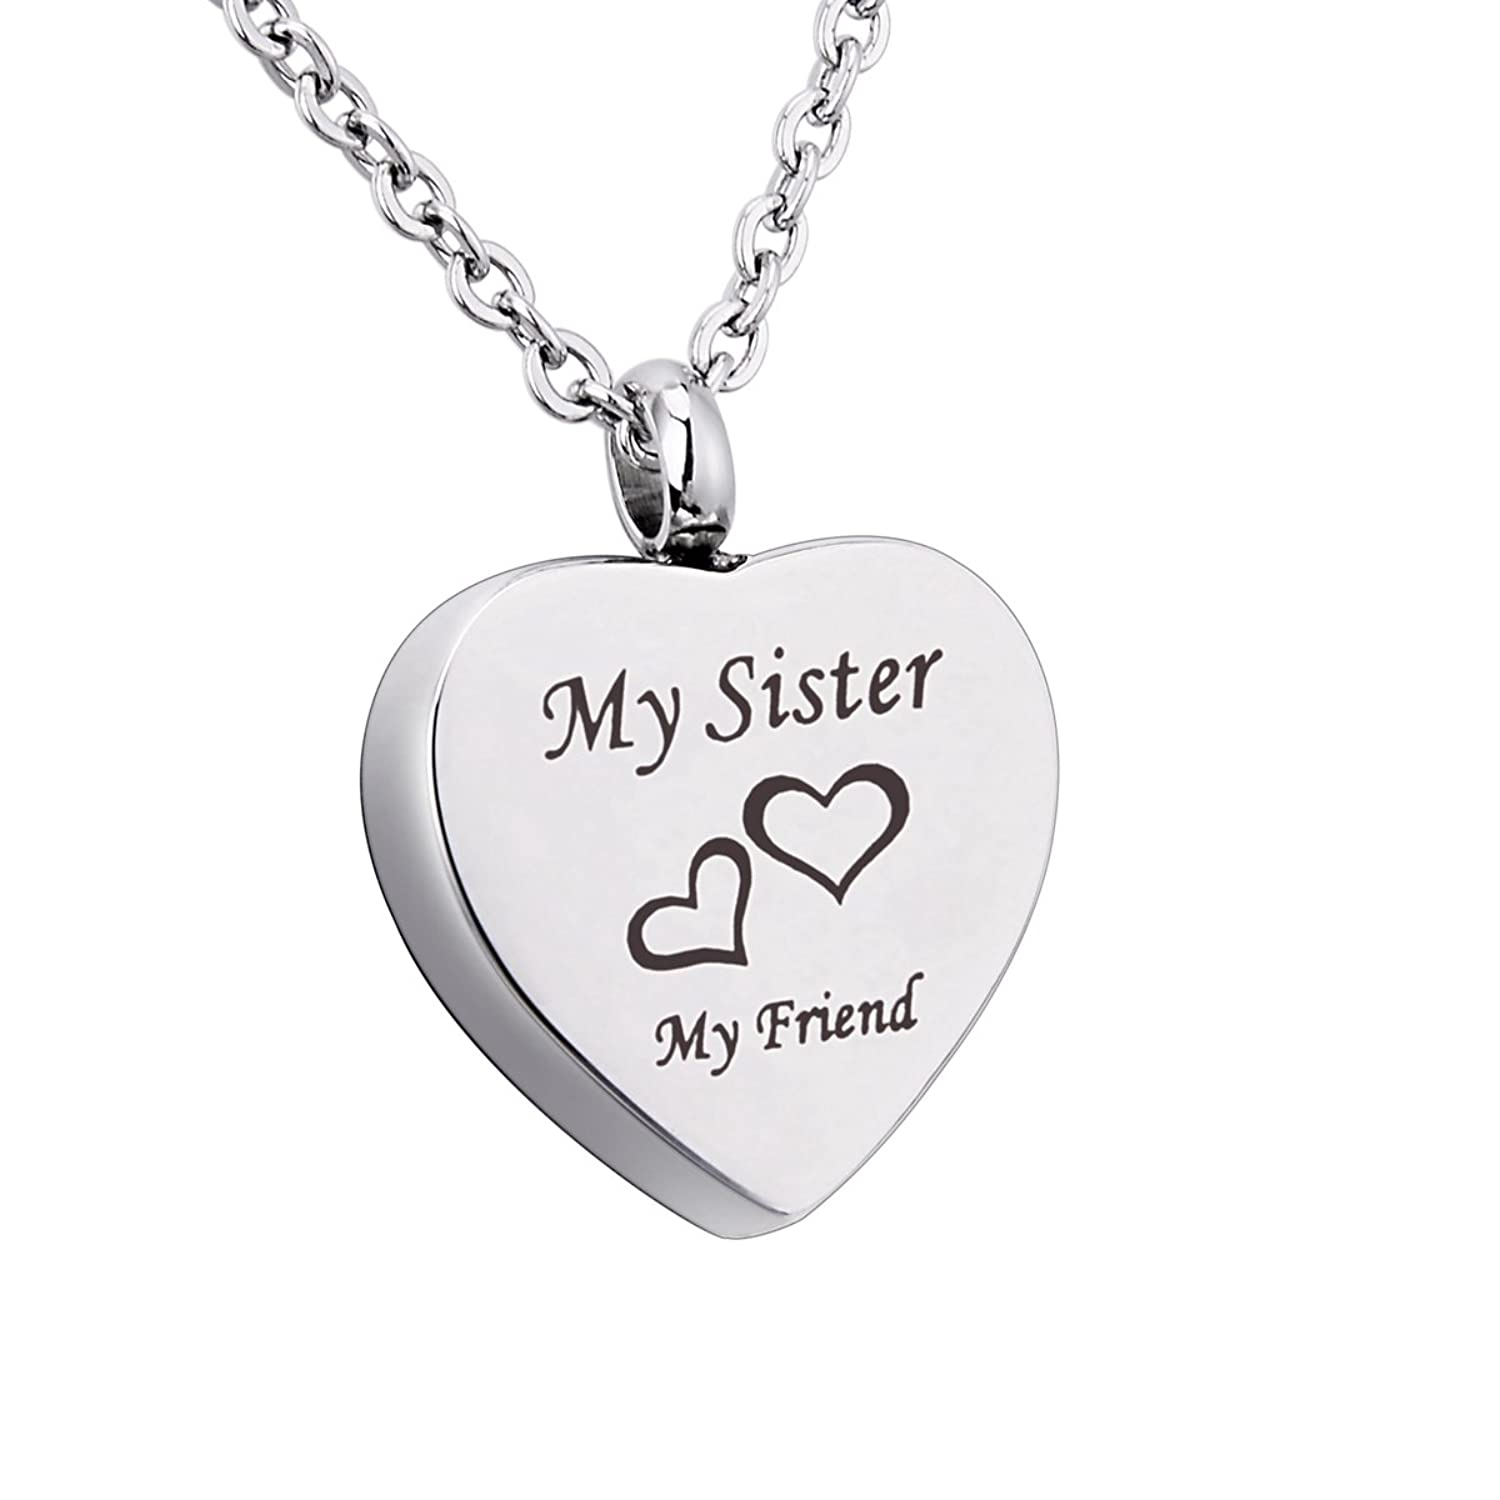 My Grandma/Grandpa Father/Mother Brother/Sister Daughter/Son Husband My Friend Cremation Urn Necklace for Ash Jewelry Memorial Keepsake Pendant